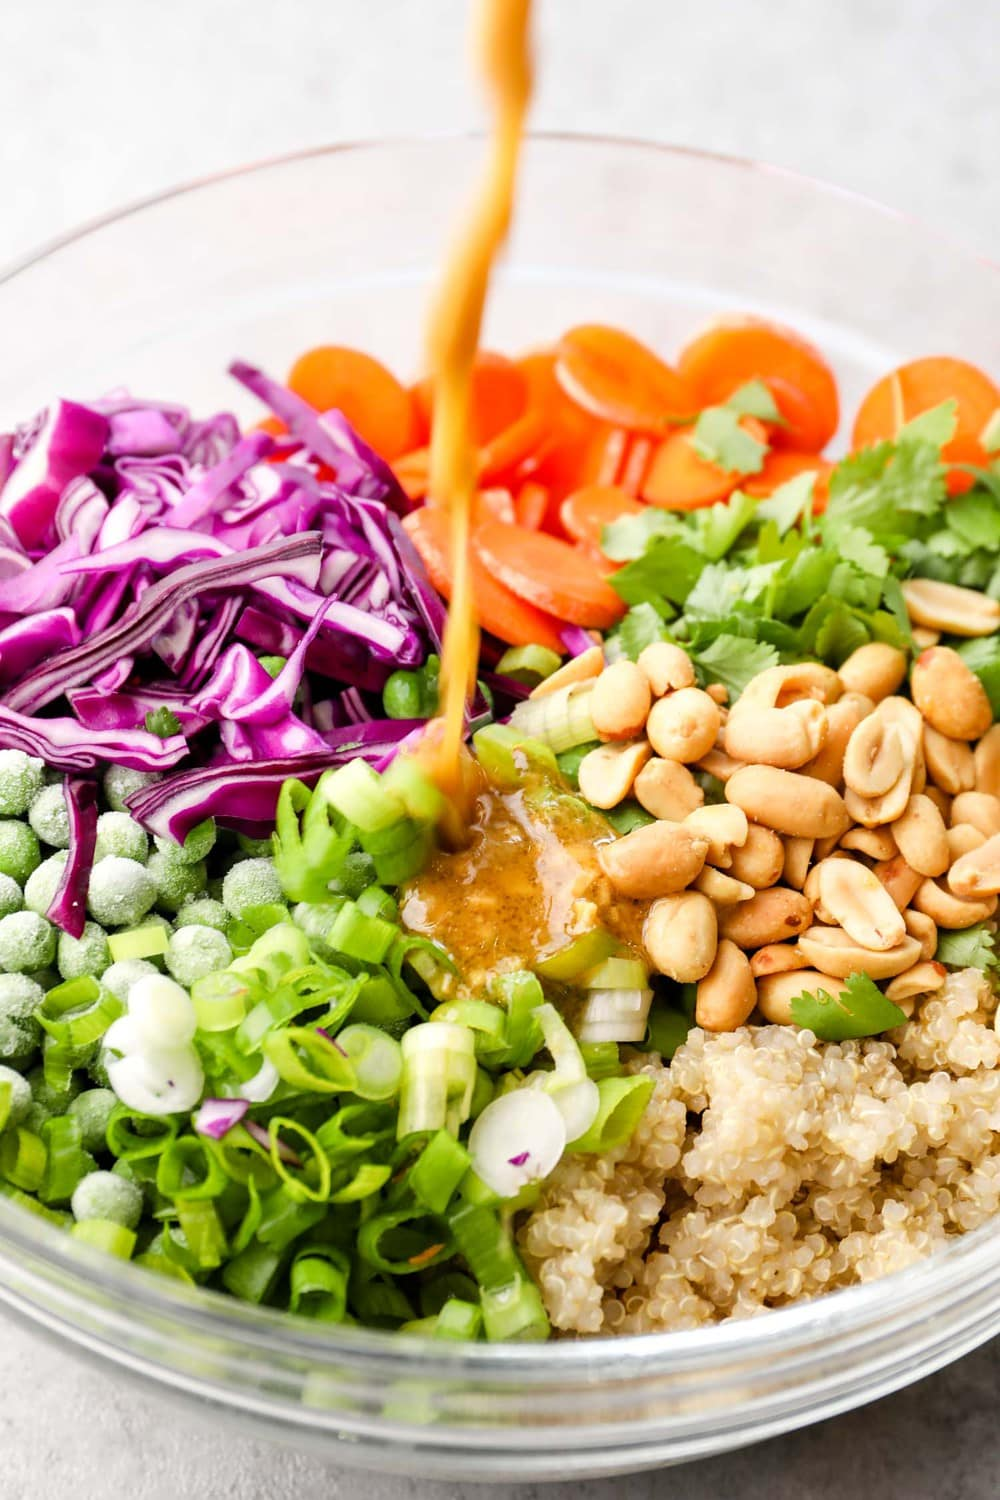 Dressing being poured into Asian Quinoa Salad.